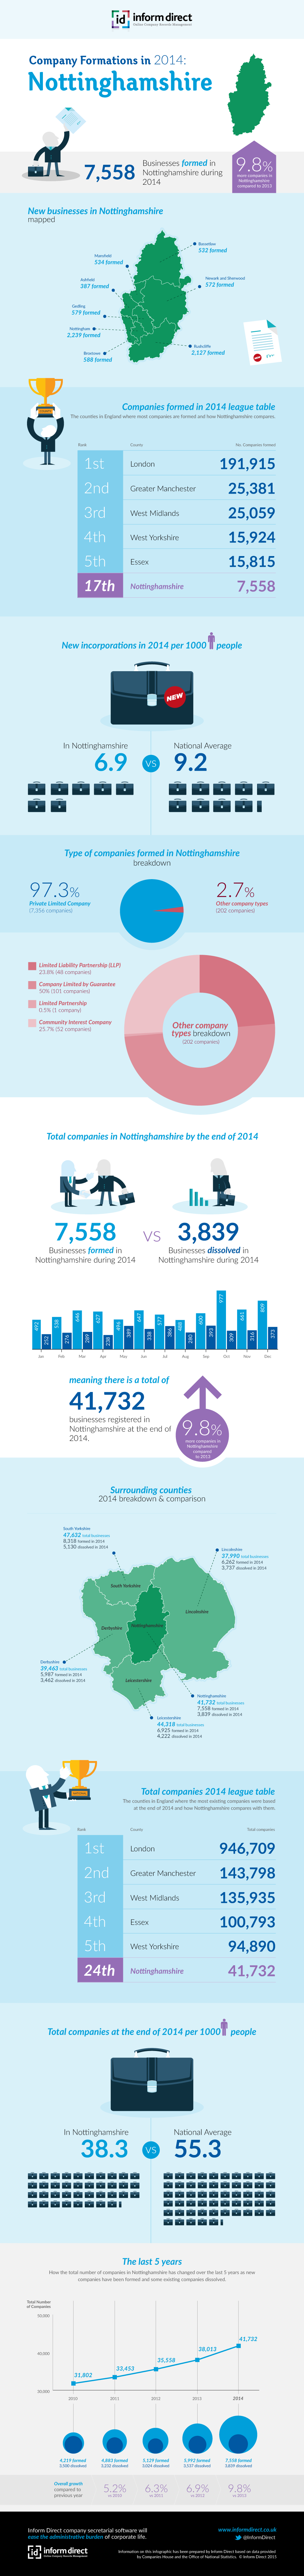 Inform Direct - Company Formations in Nottinghamshire 2014 Infographic